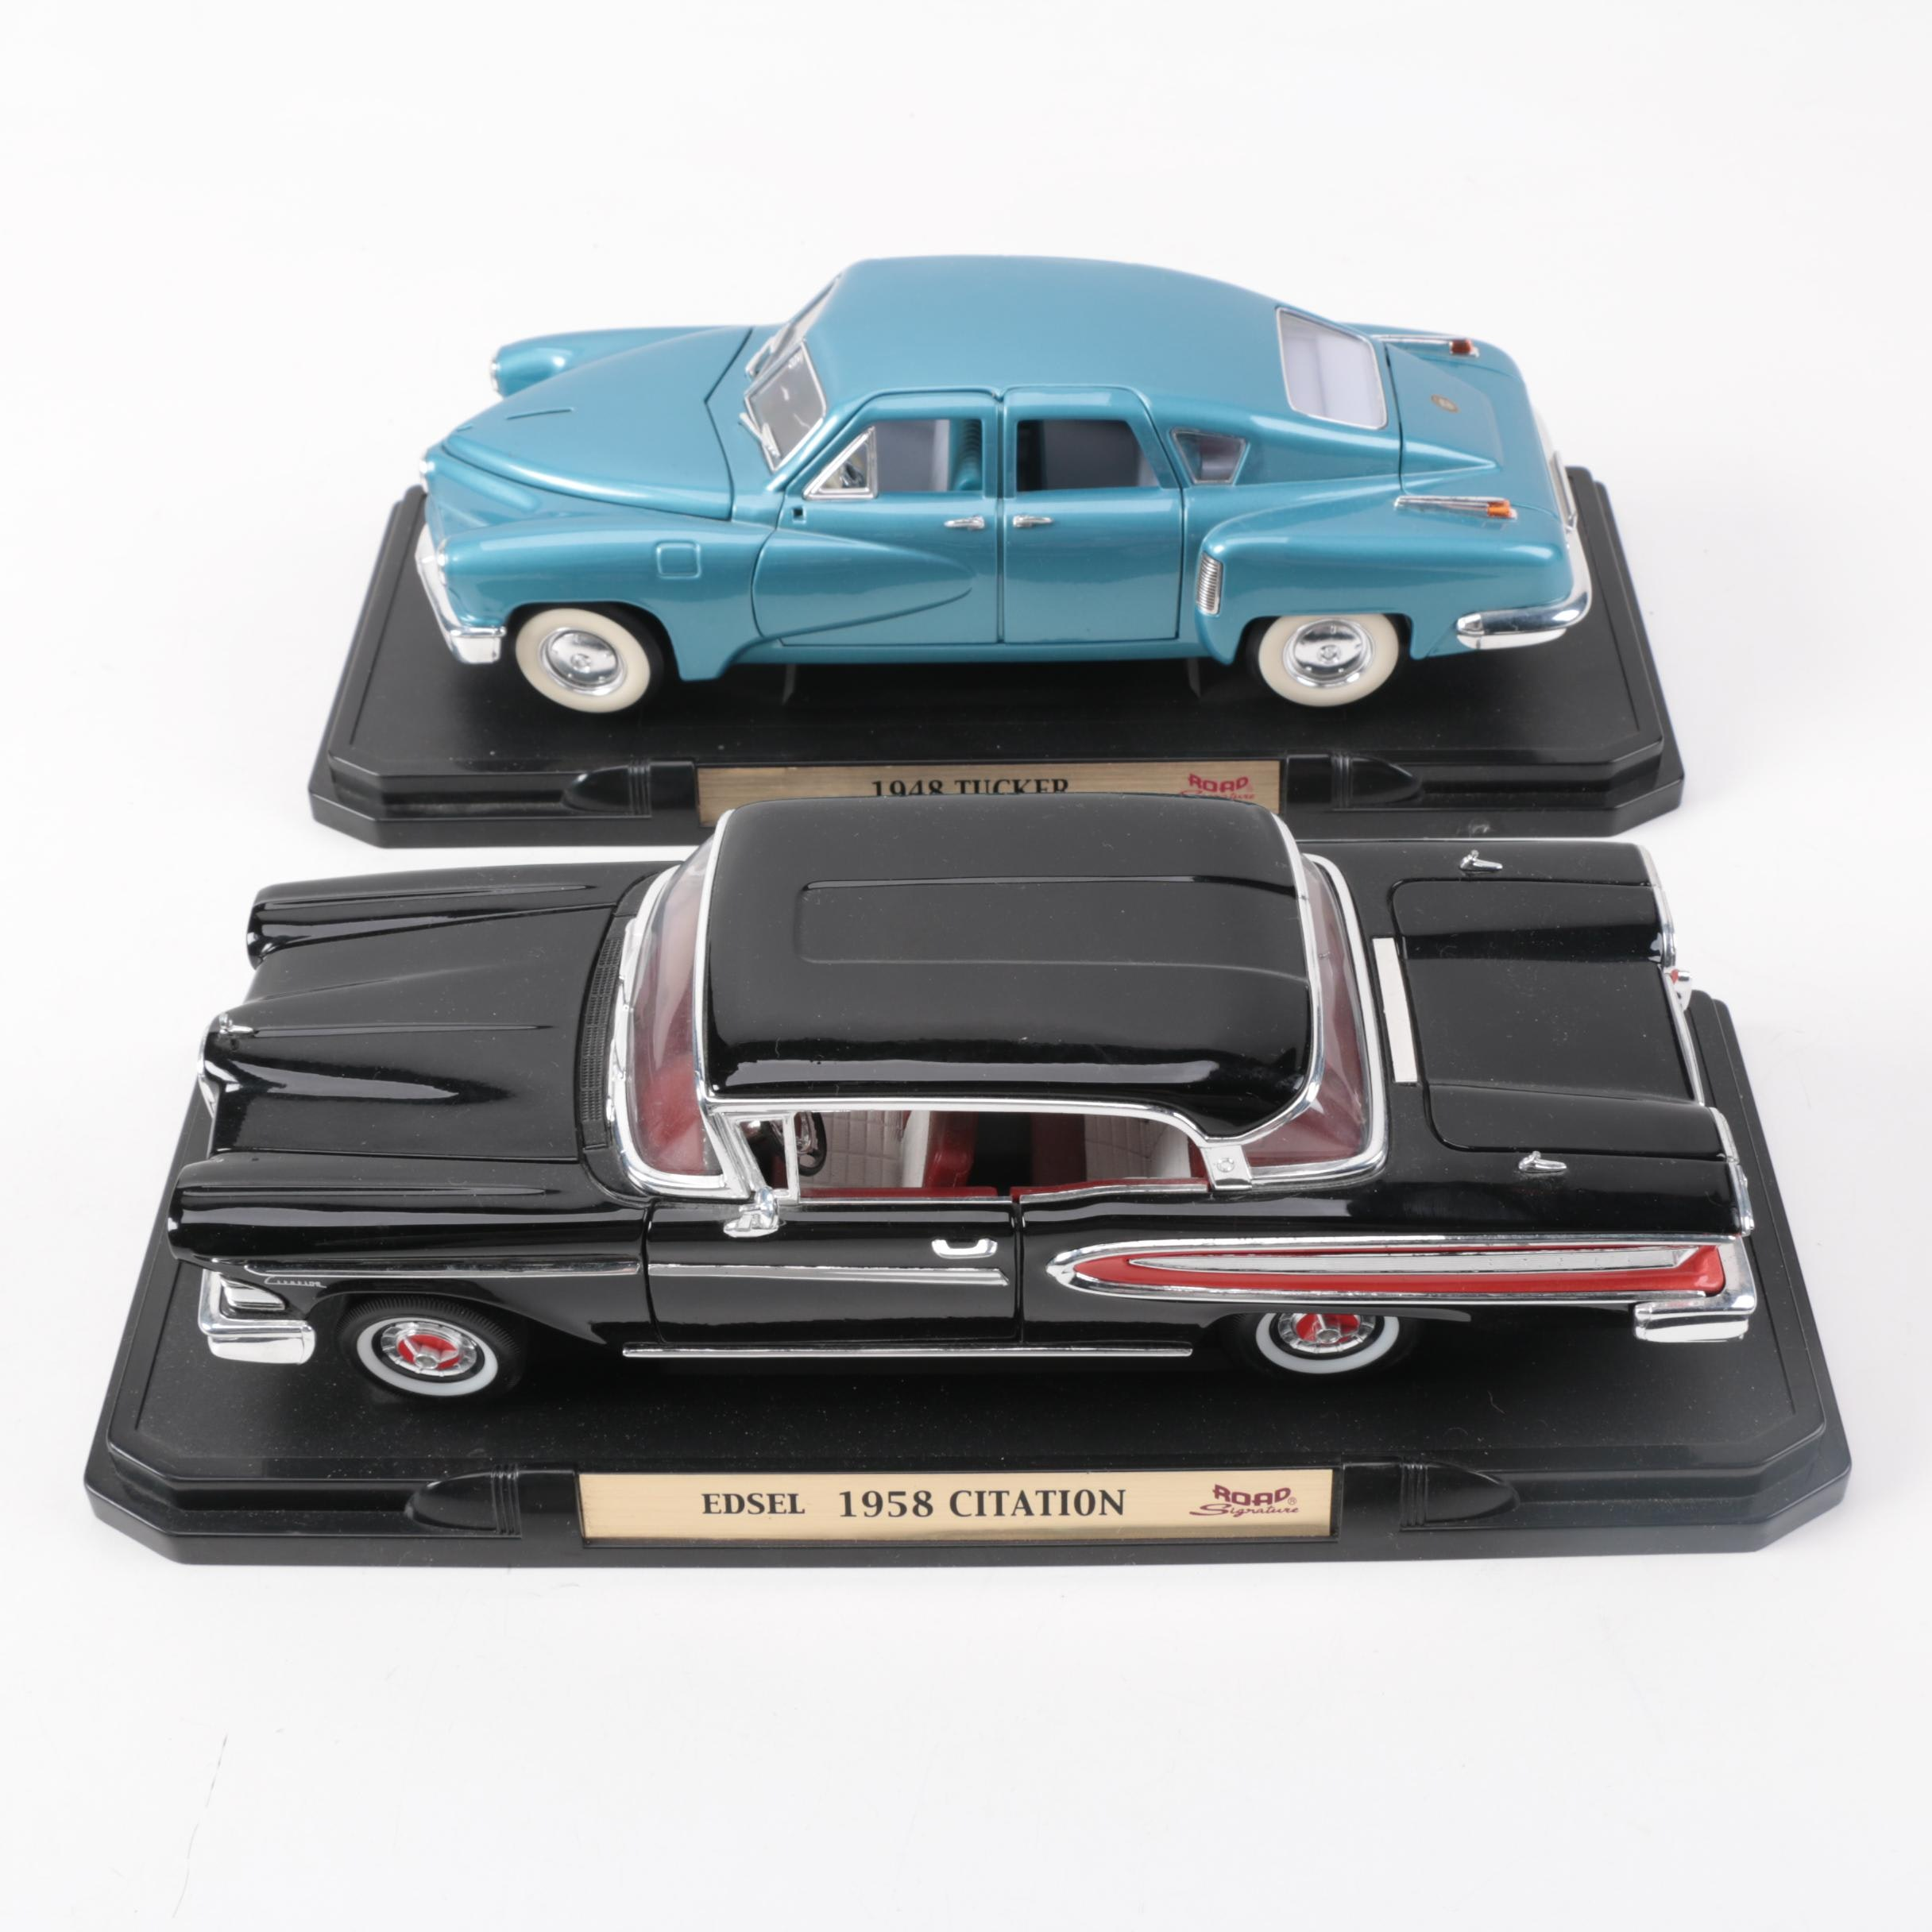 Die-Cast Tucker and Edsel Cars by Road Signature